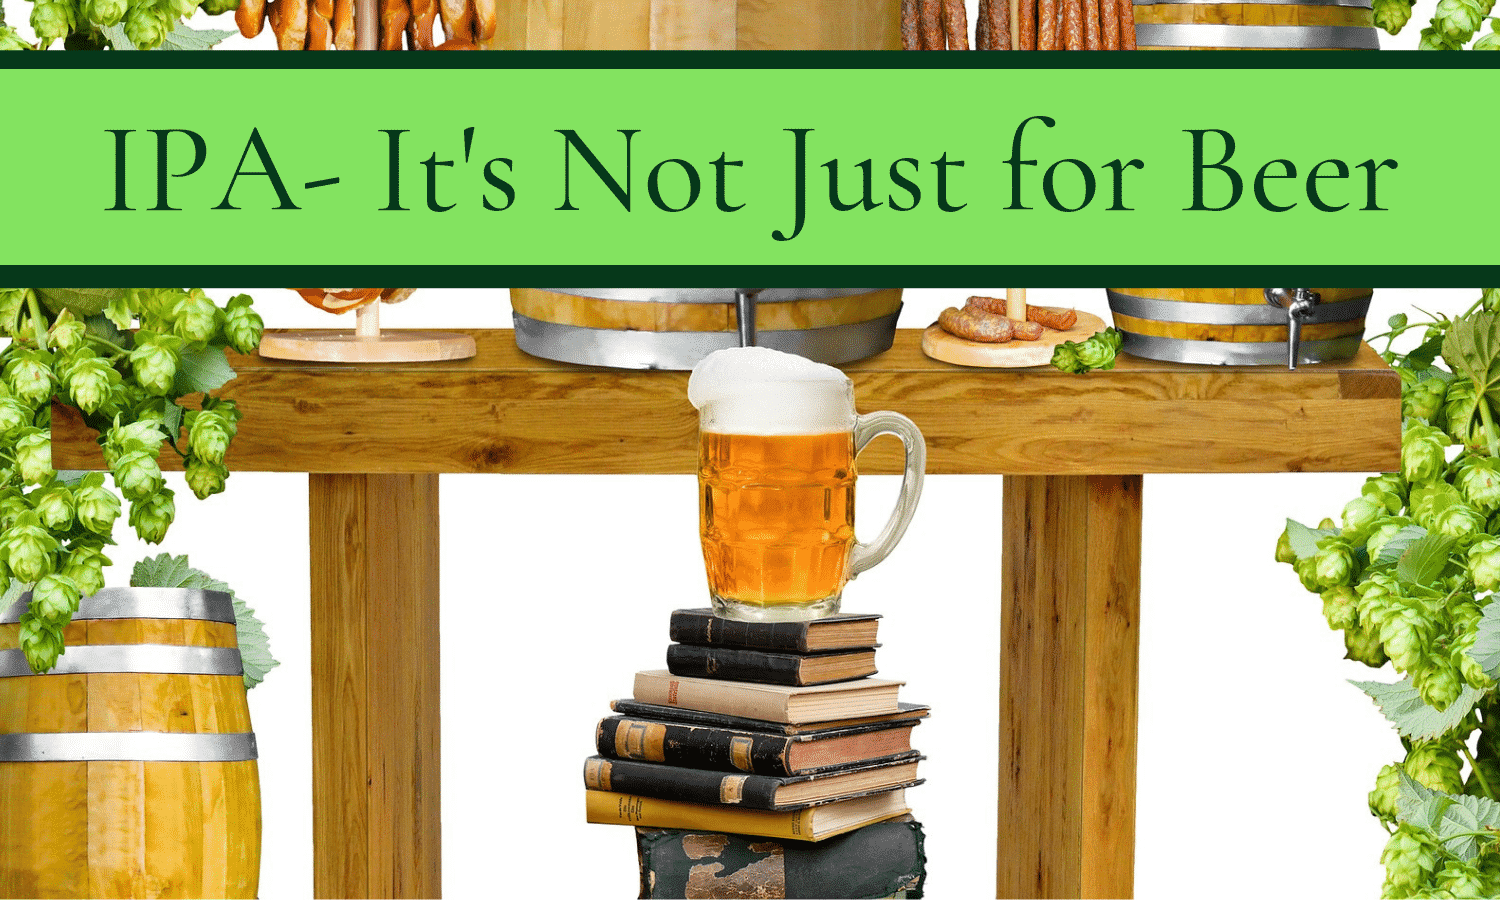 IPA–It's Not Just for Beer